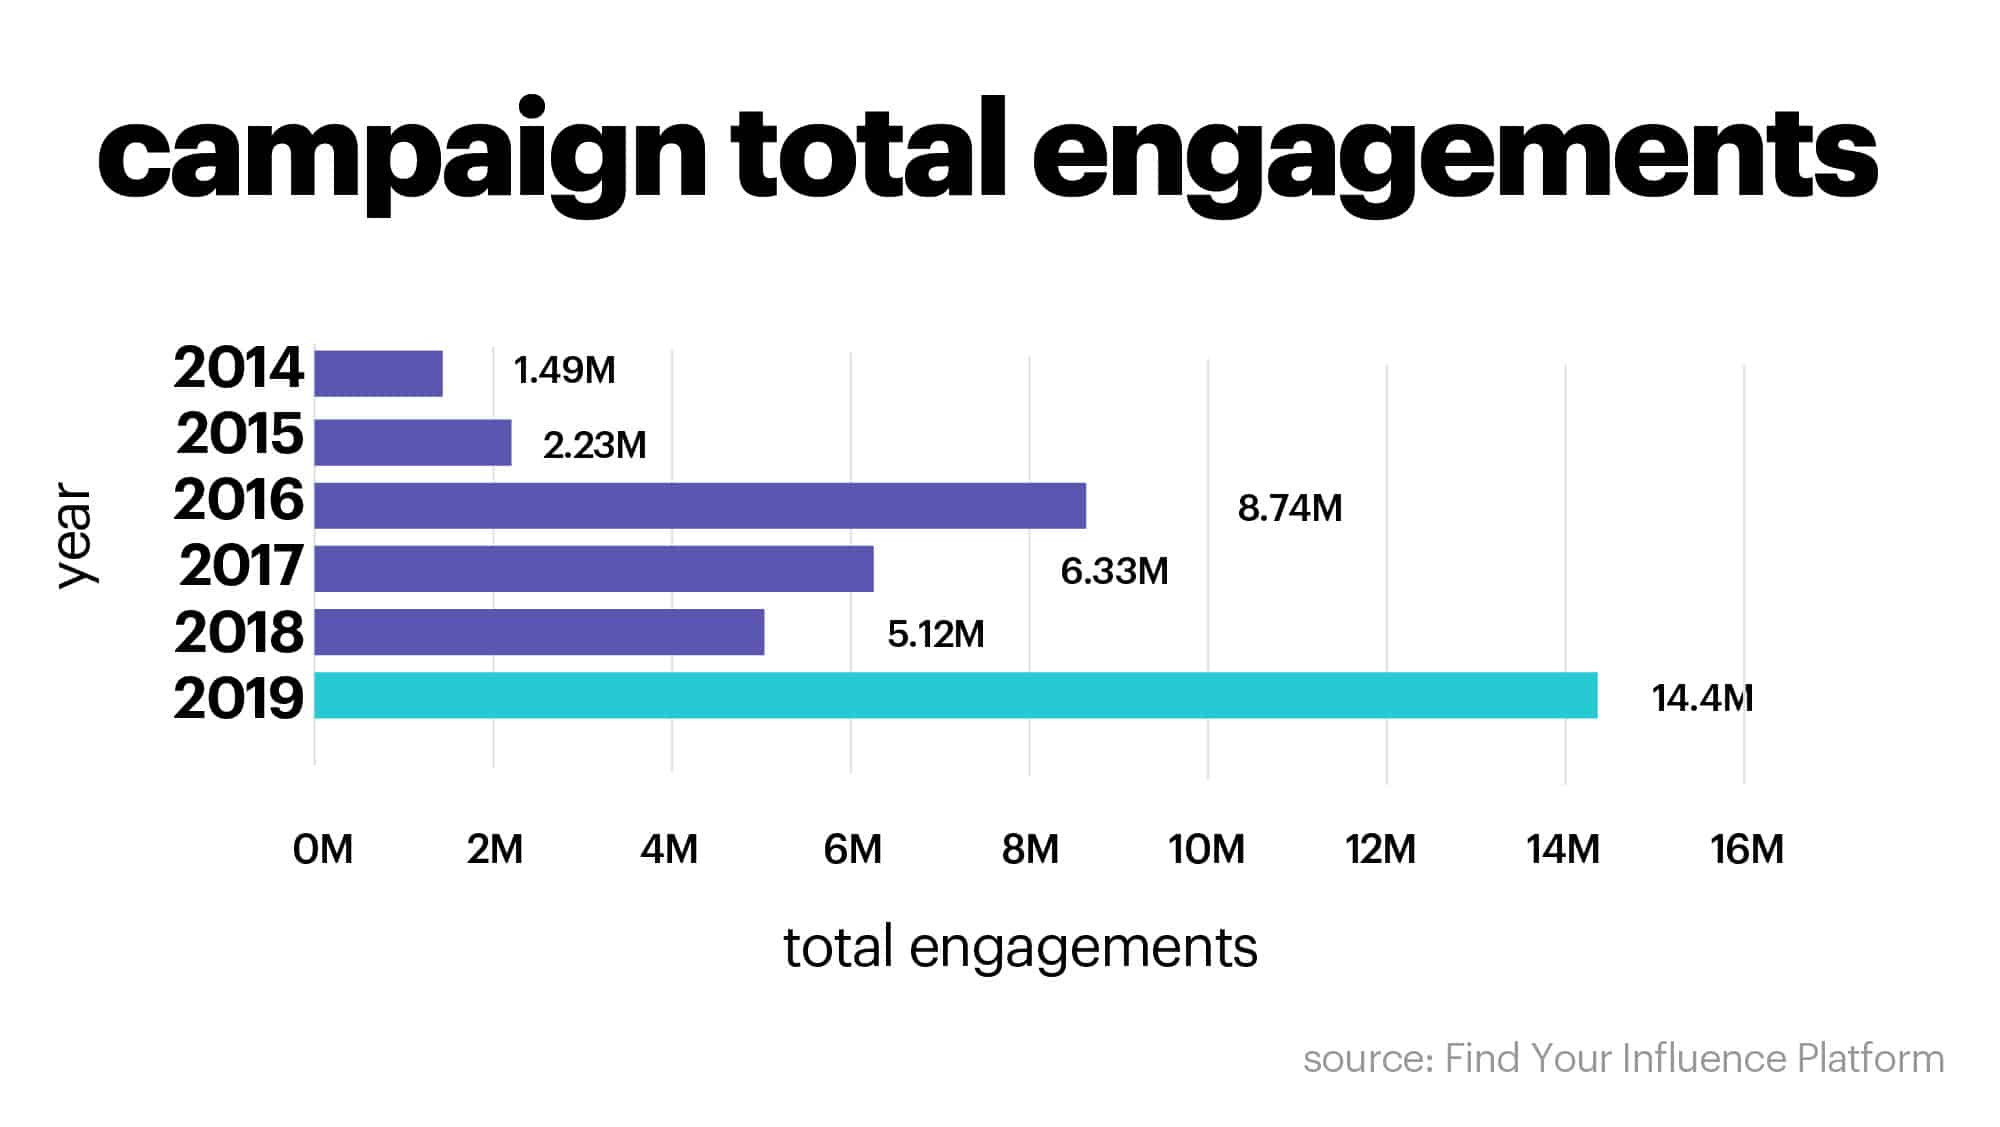 influencer marketing campaign engagements